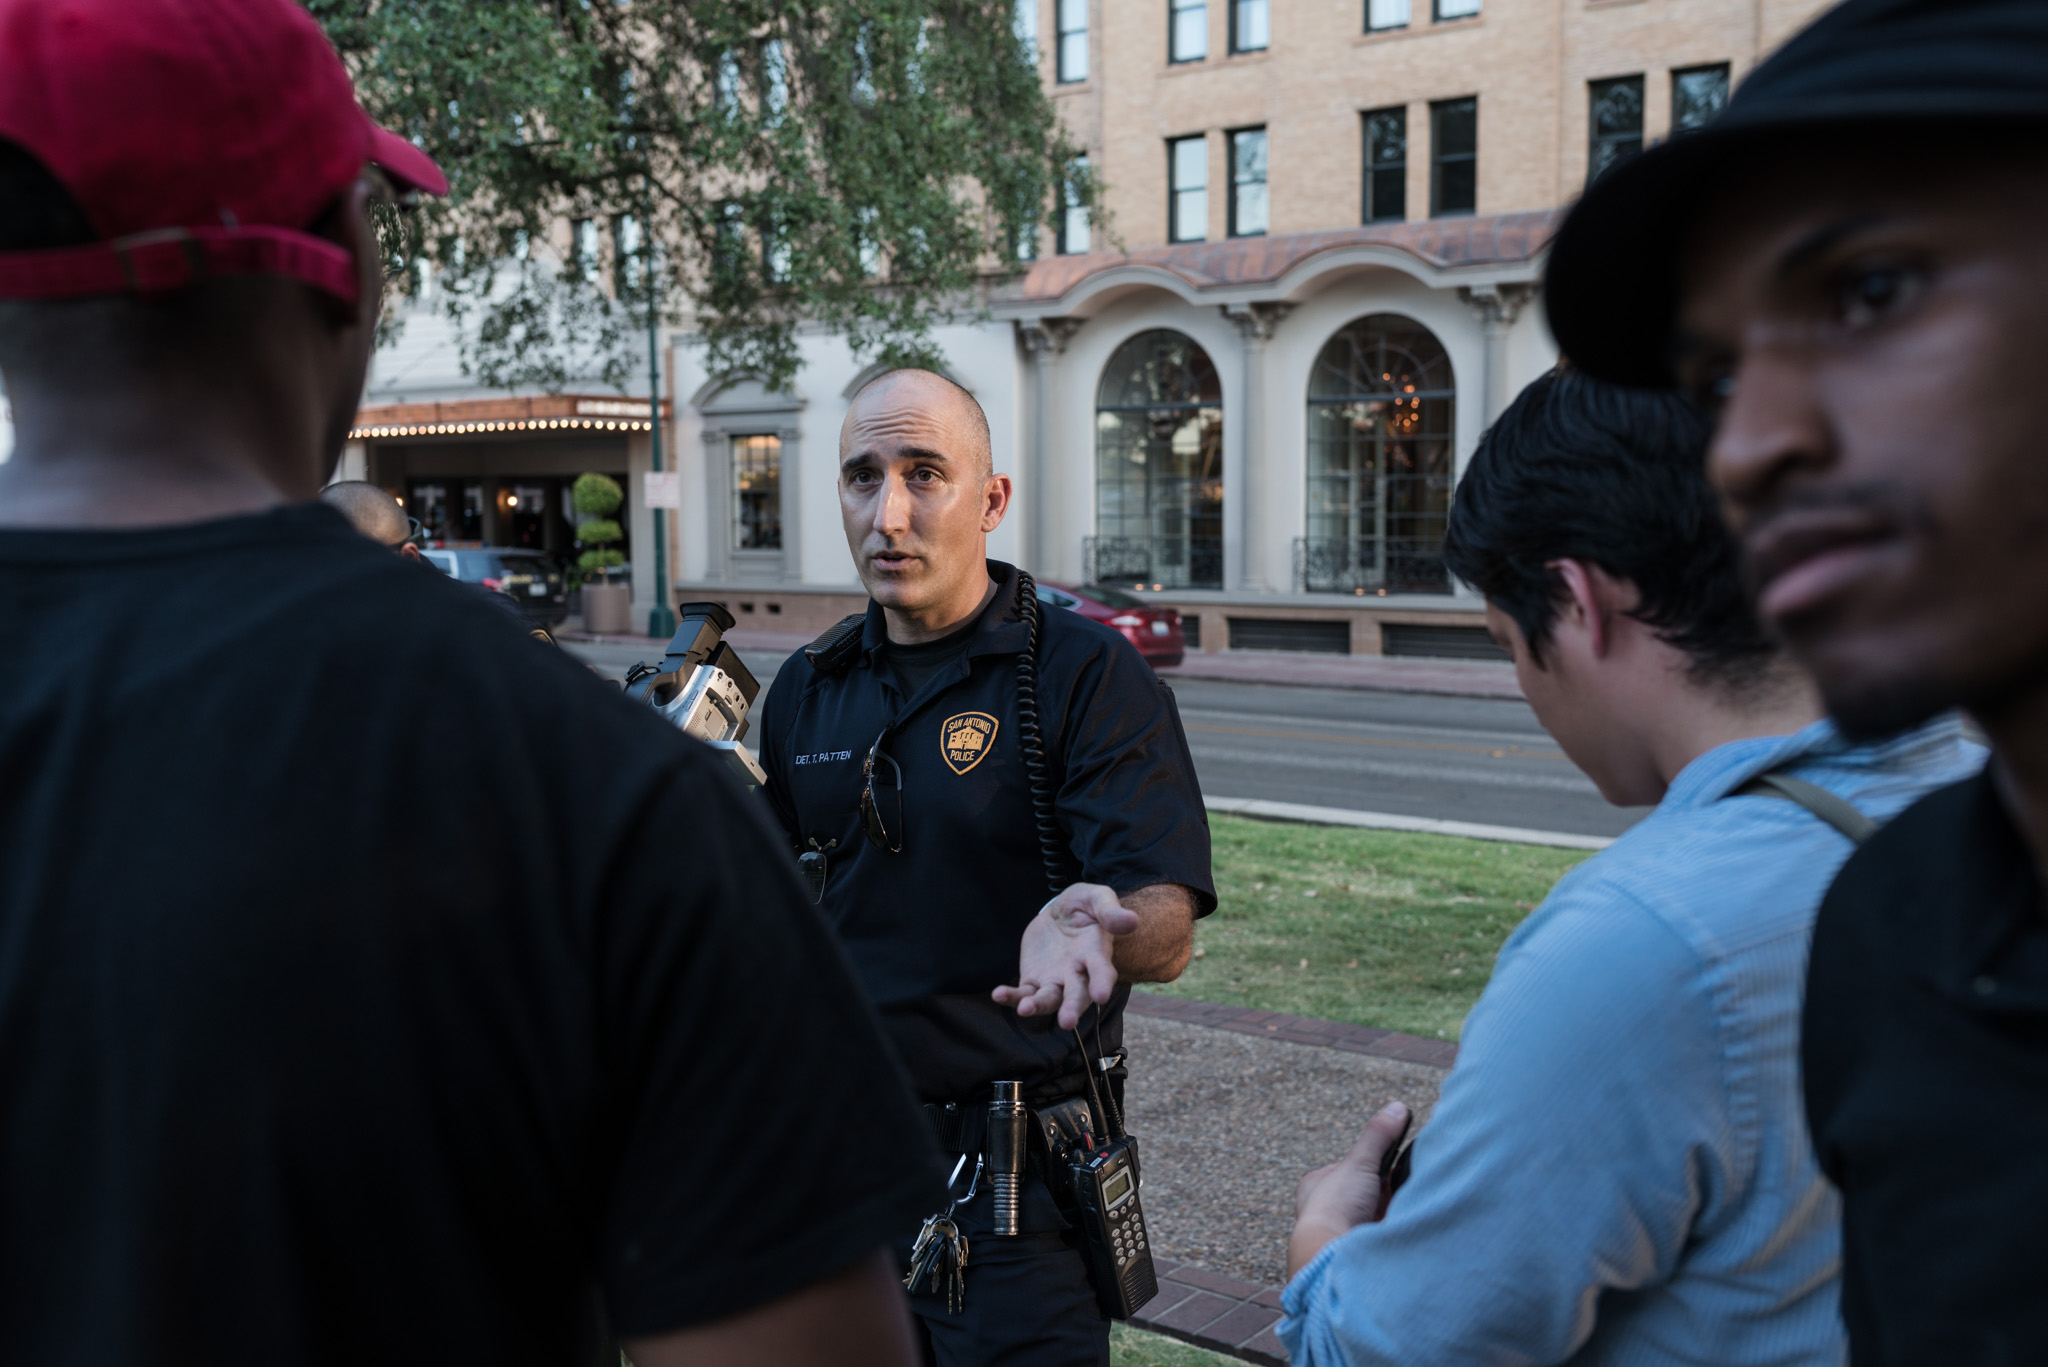 Mike Lowe, 36, and Johnathan Jones, 24, talk to Det. T.Patton, 46, about videotaping the protest. Photo by Anthony Francis.